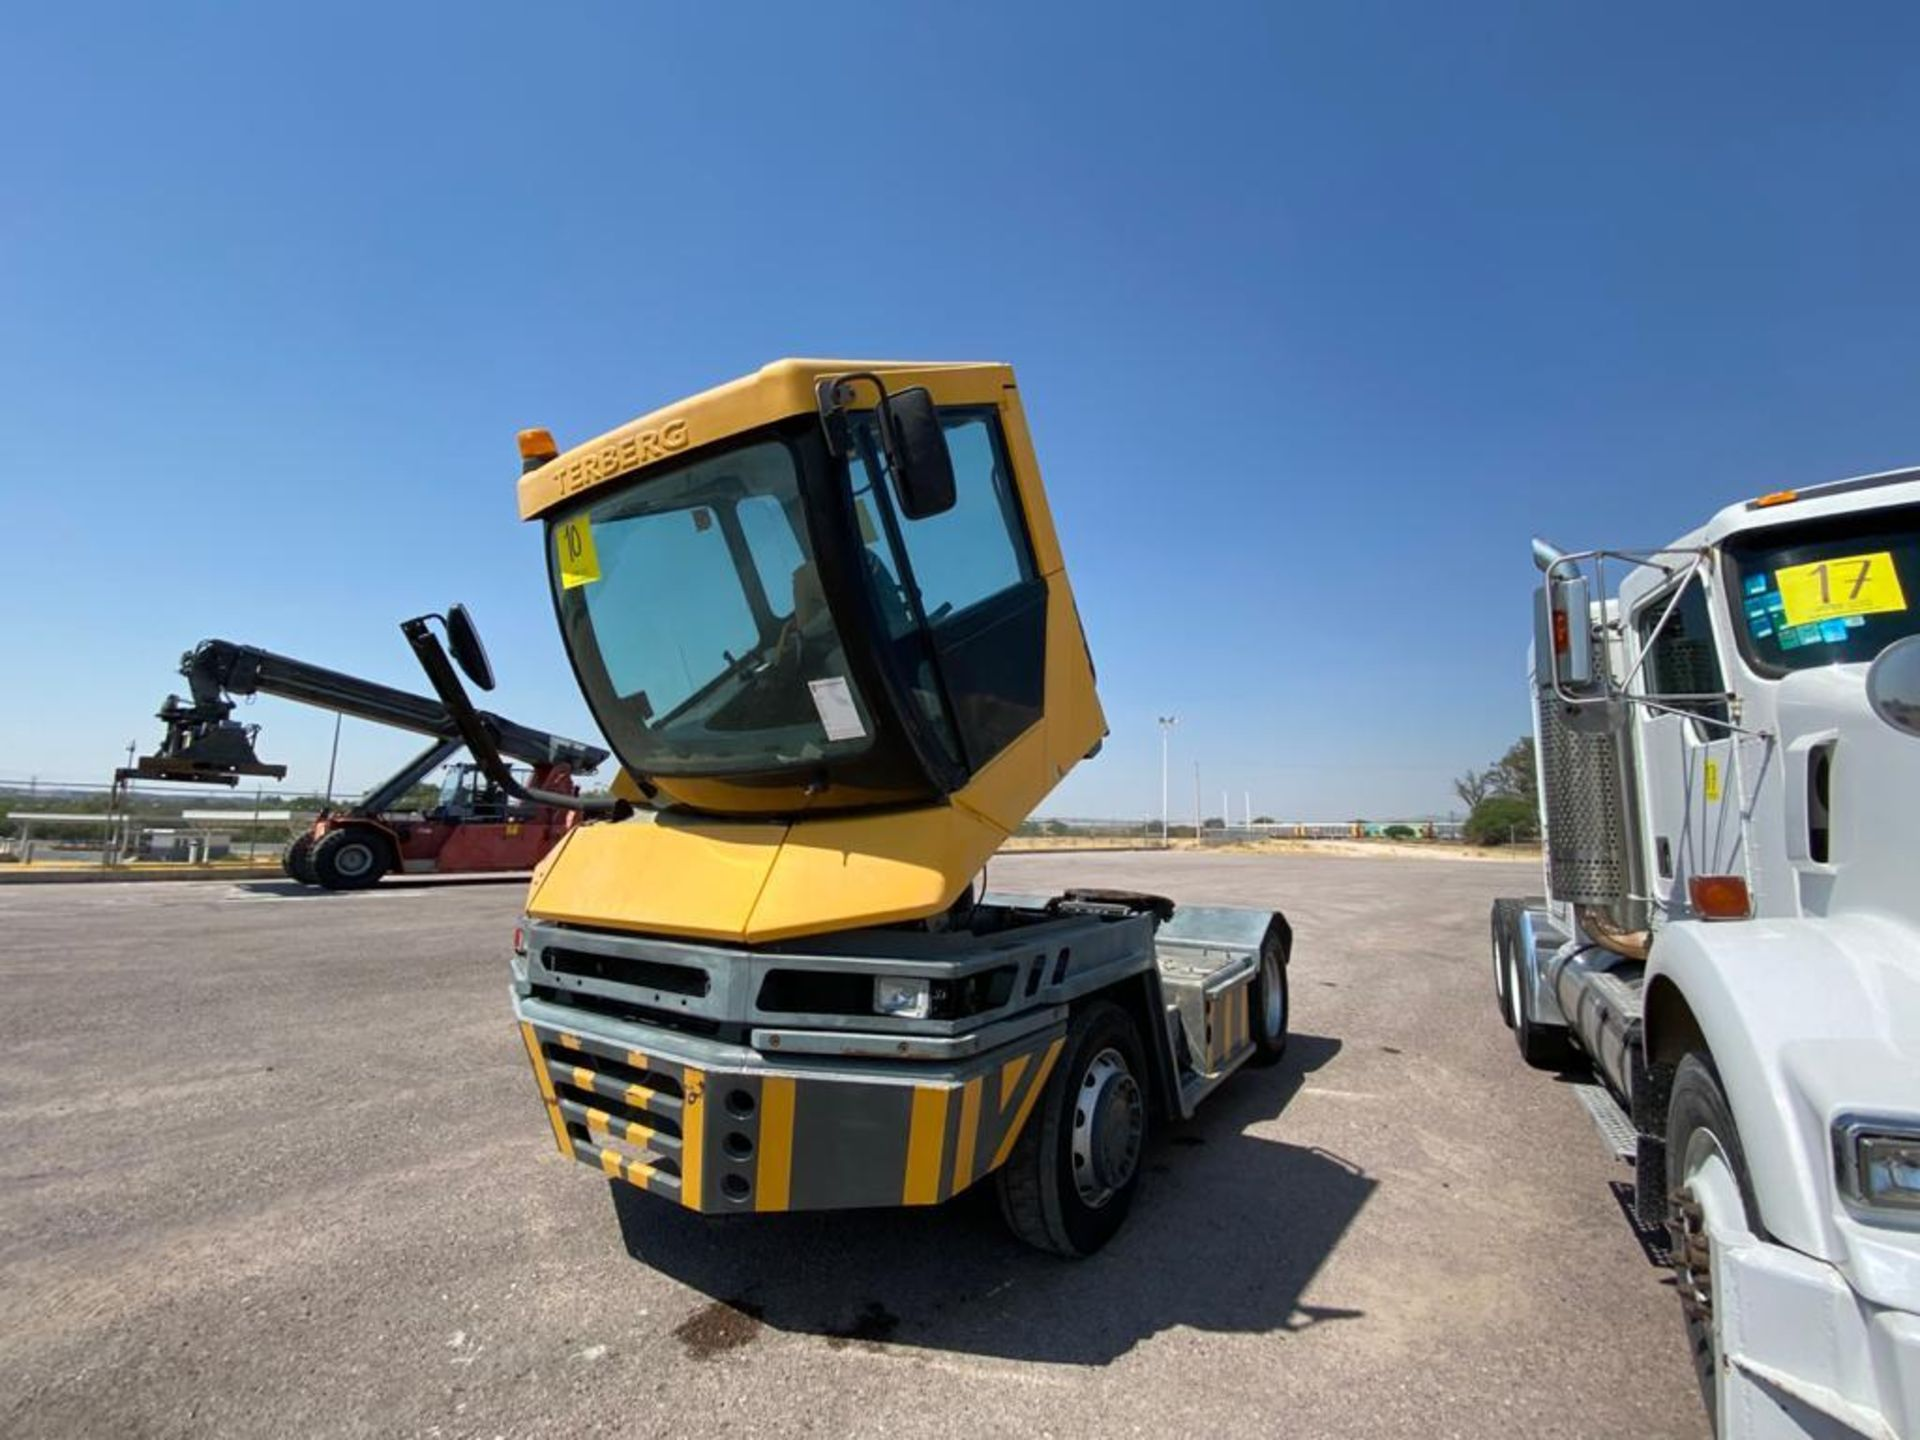 Terberg Capacity 2002 Terminal Tractor, automatic transmissio - Image 8 of 28